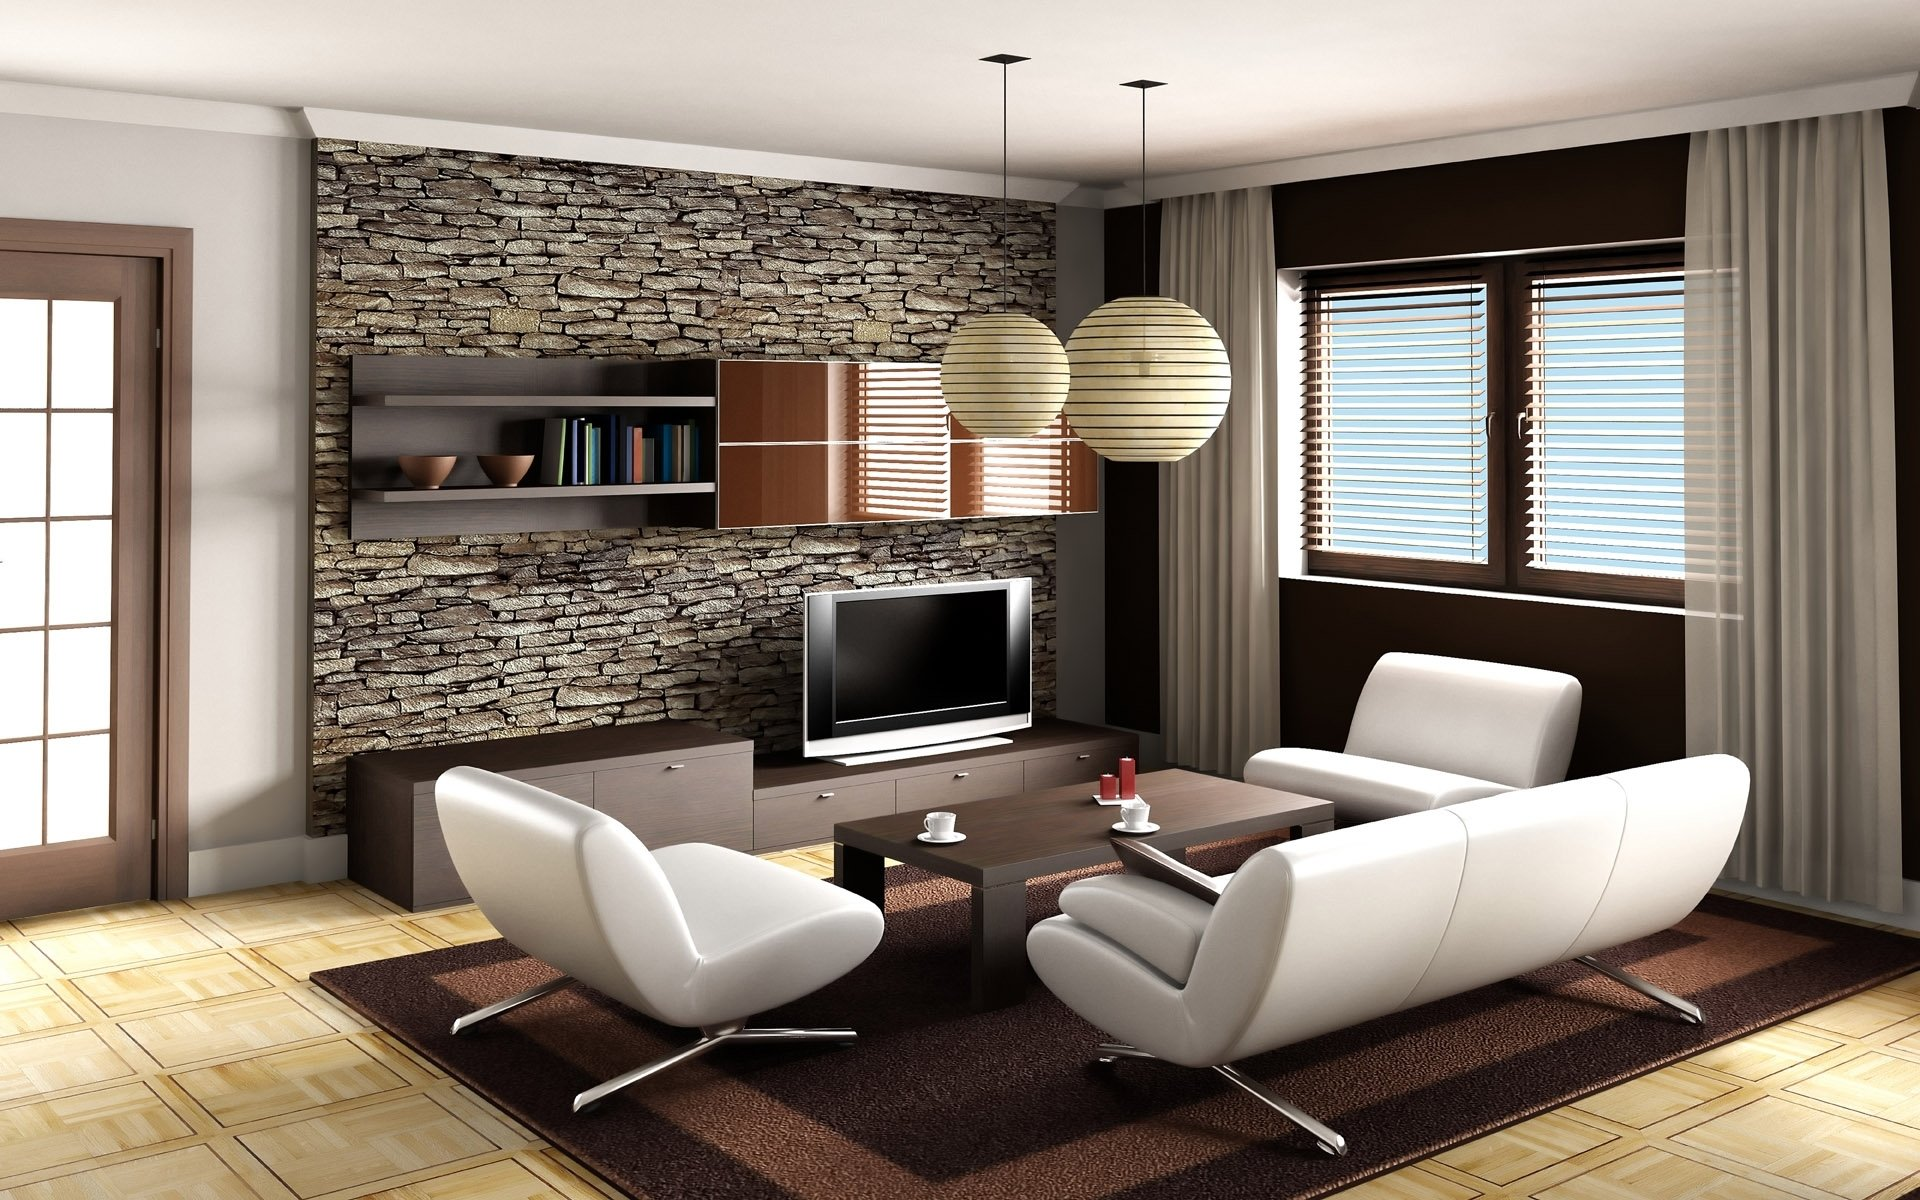 10 Most Popular Decoration Ideas For Living Room living room furniture living room decoration ideas living room 2021